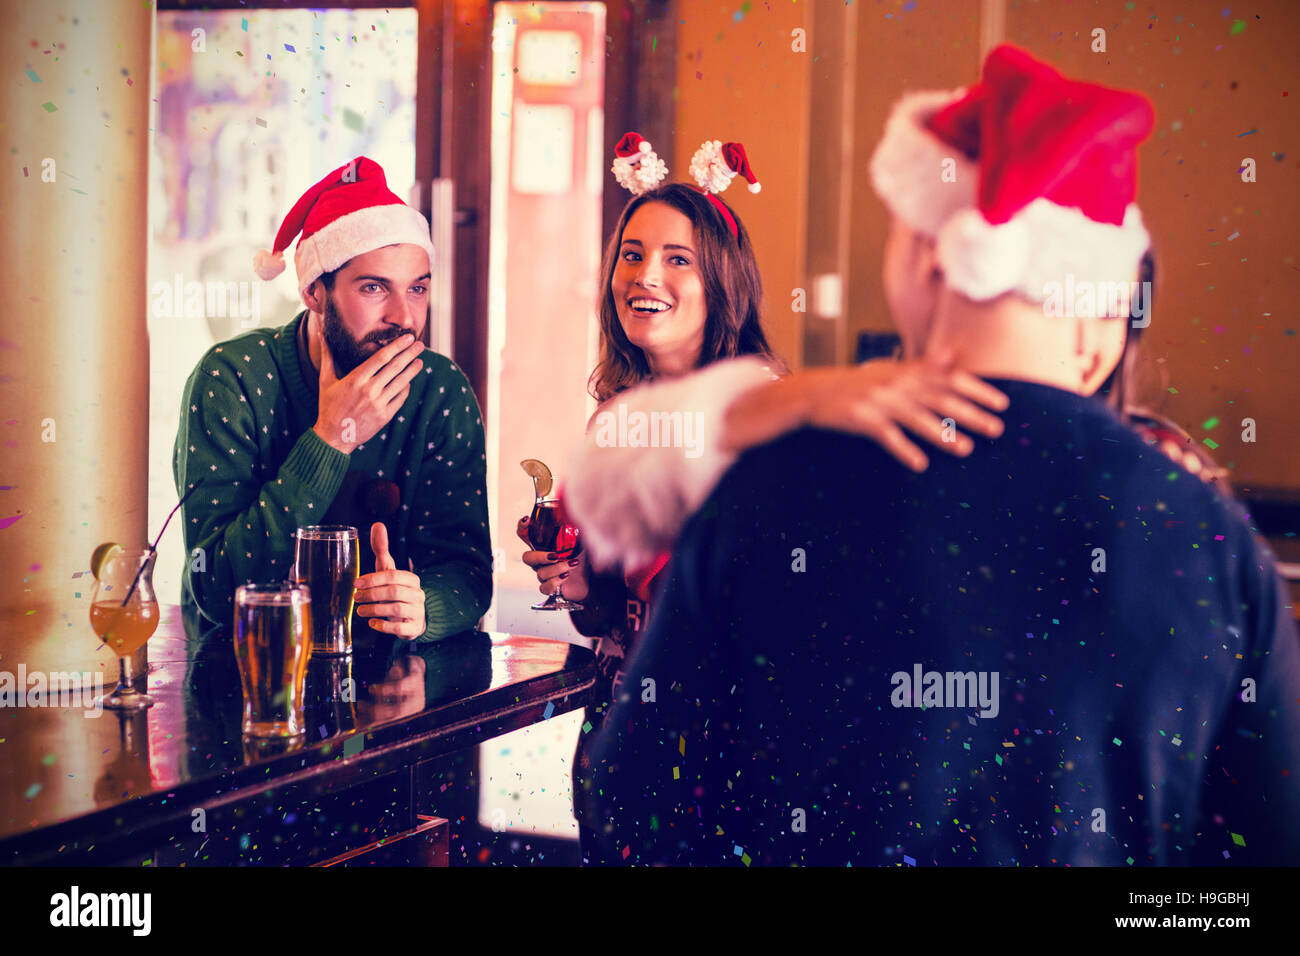 Composite image of festive friends having fun together - Stock Image